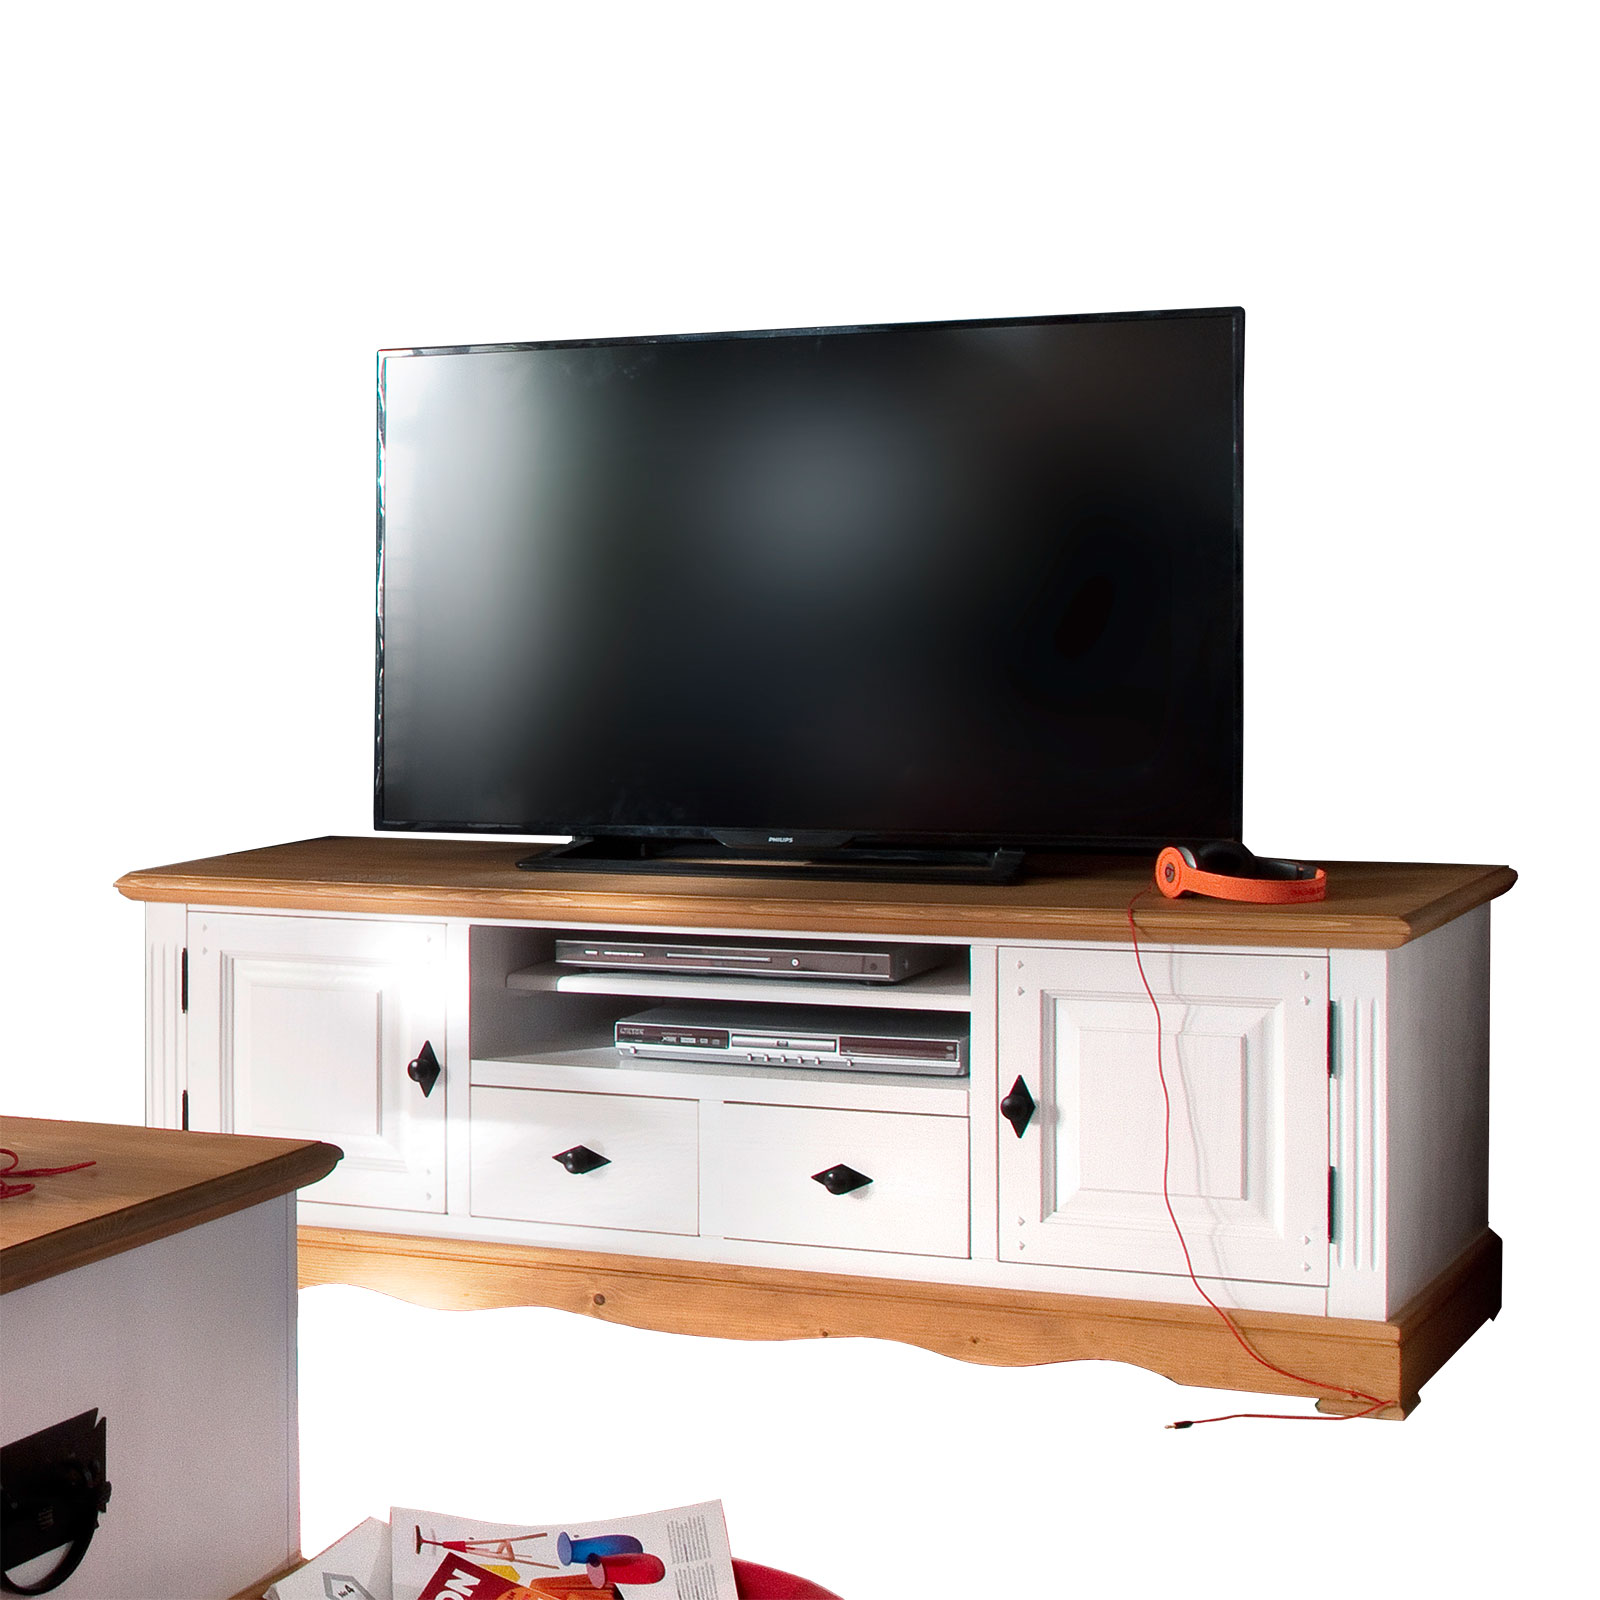 tv lowboard alby wei natur 160 cm breit pinie massiv. Black Bedroom Furniture Sets. Home Design Ideas